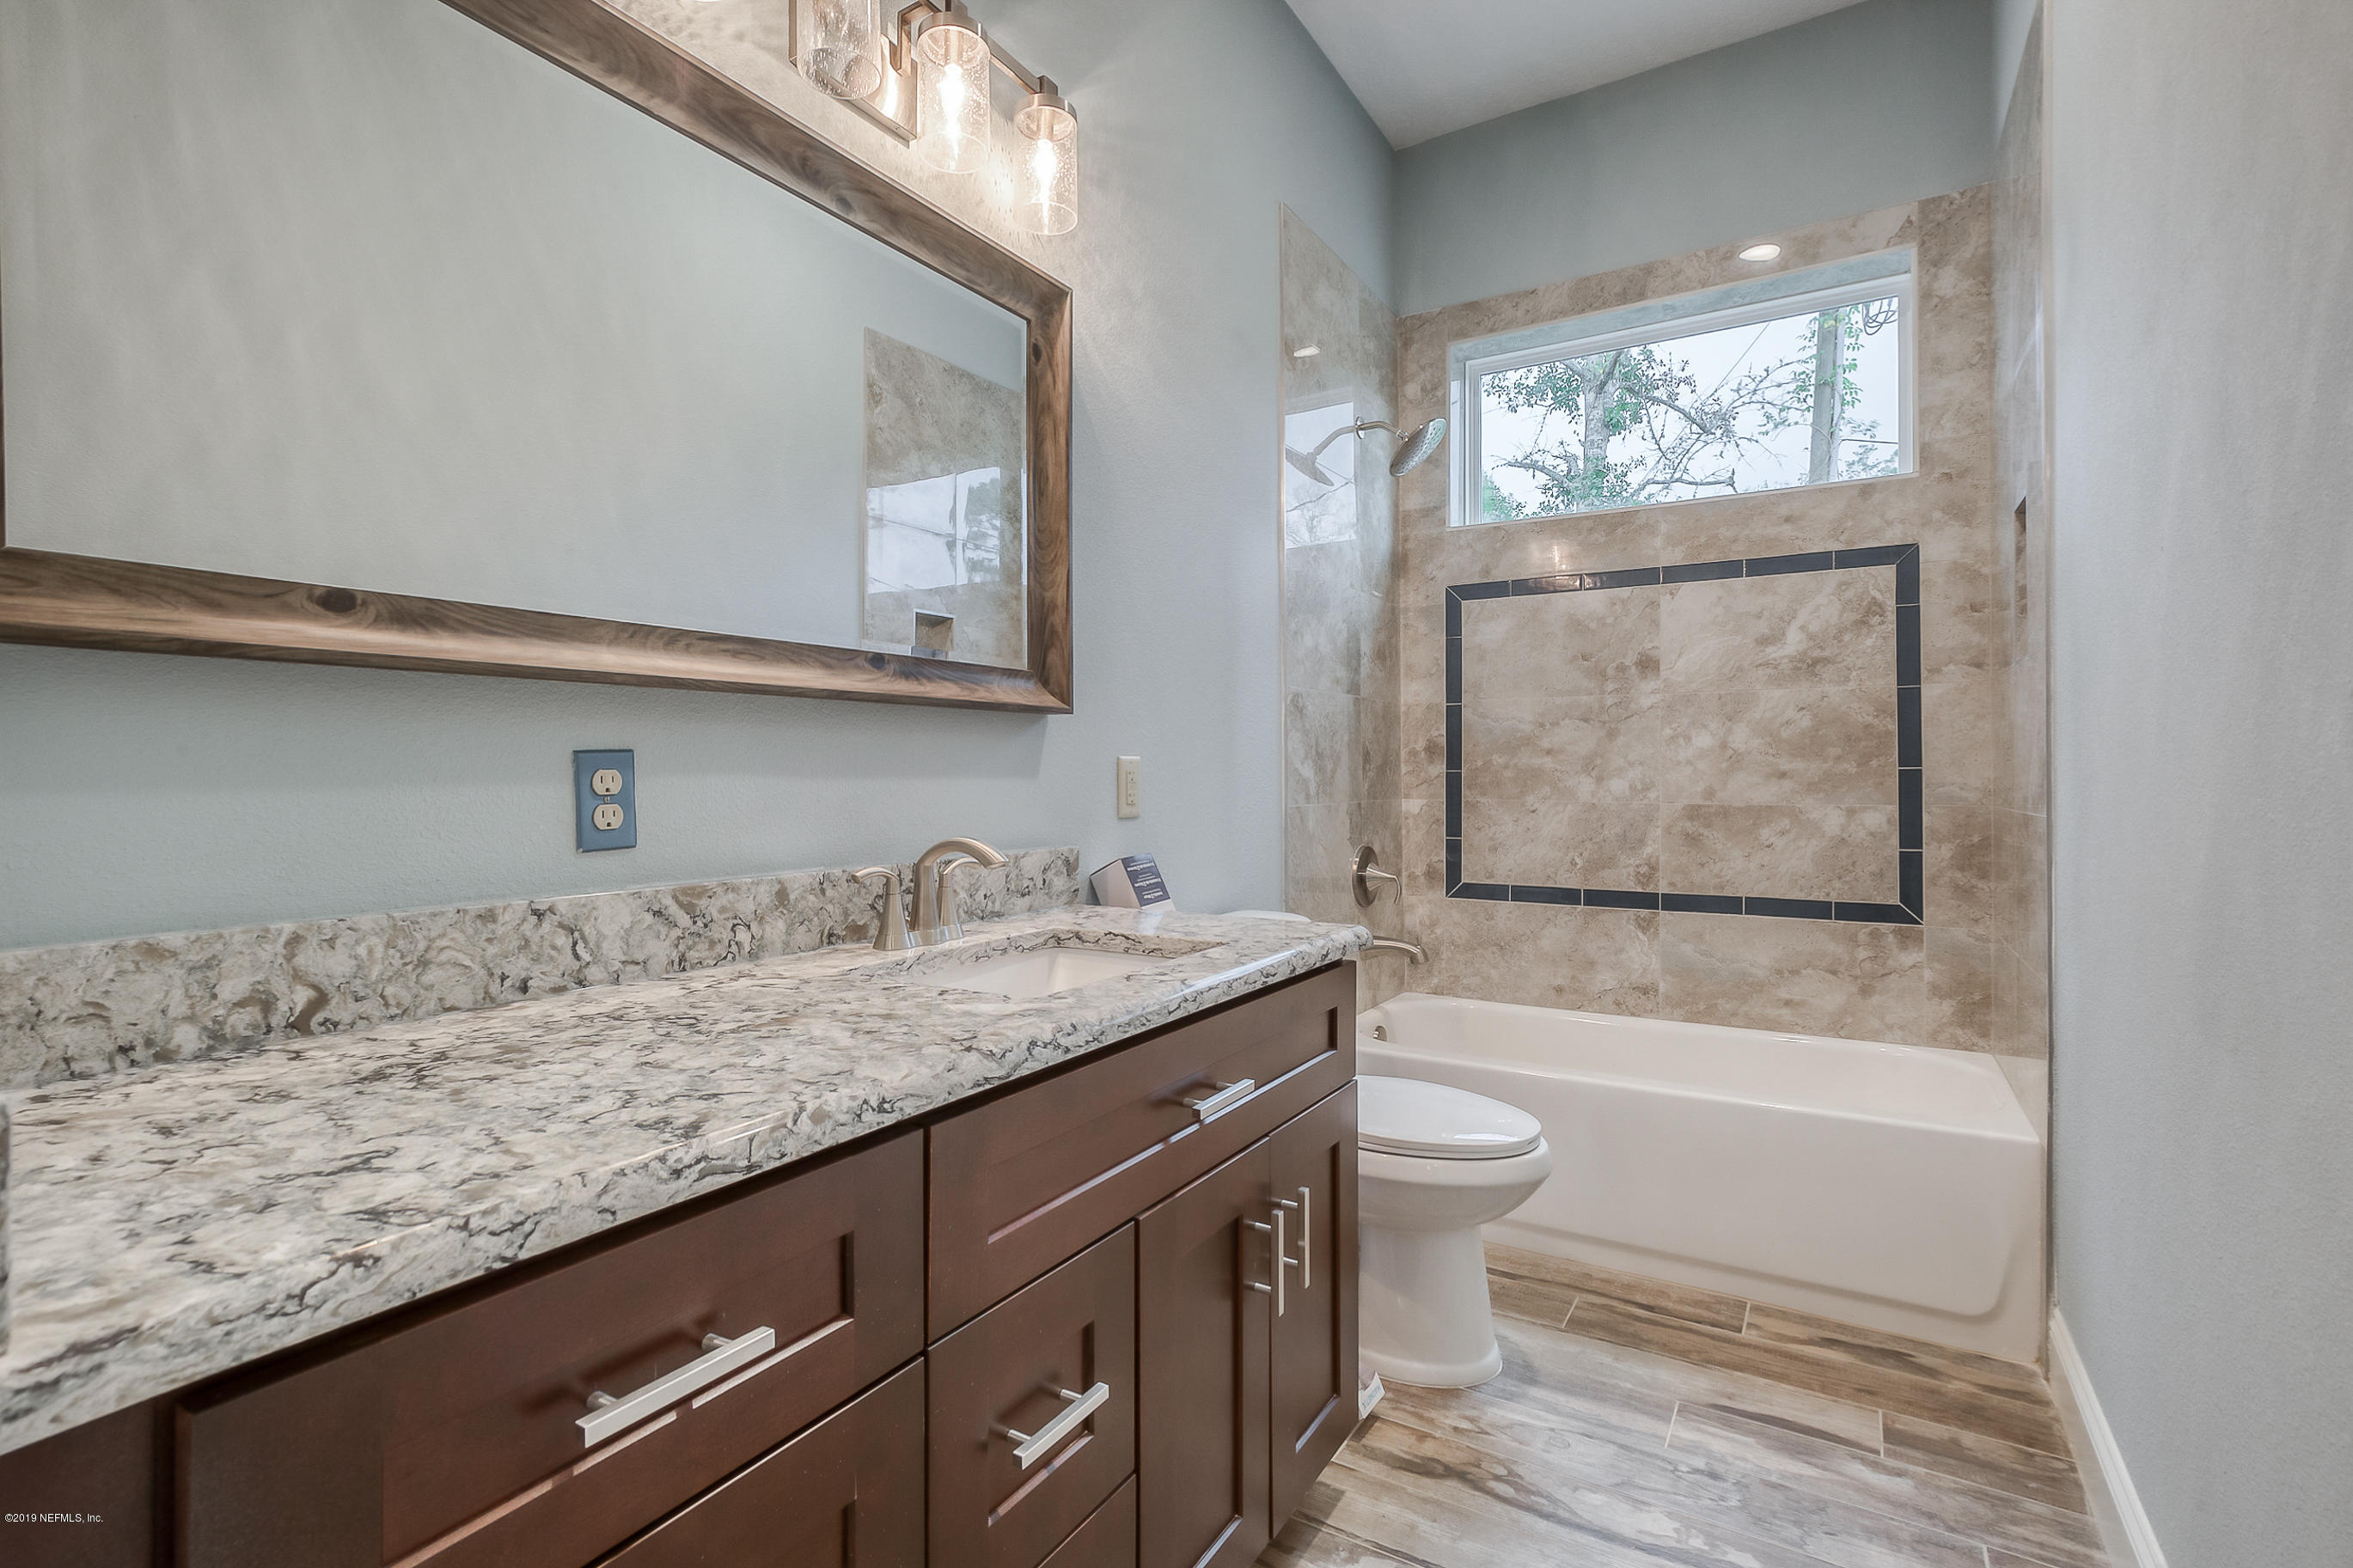 4120-1 RIVERVIEW, GREEN COVE SPRINGS, FLORIDA 32043, 4 Bedrooms Bedrooms, ,3 BathroomsBathrooms,Residential,For sale,RIVERVIEW,1016414